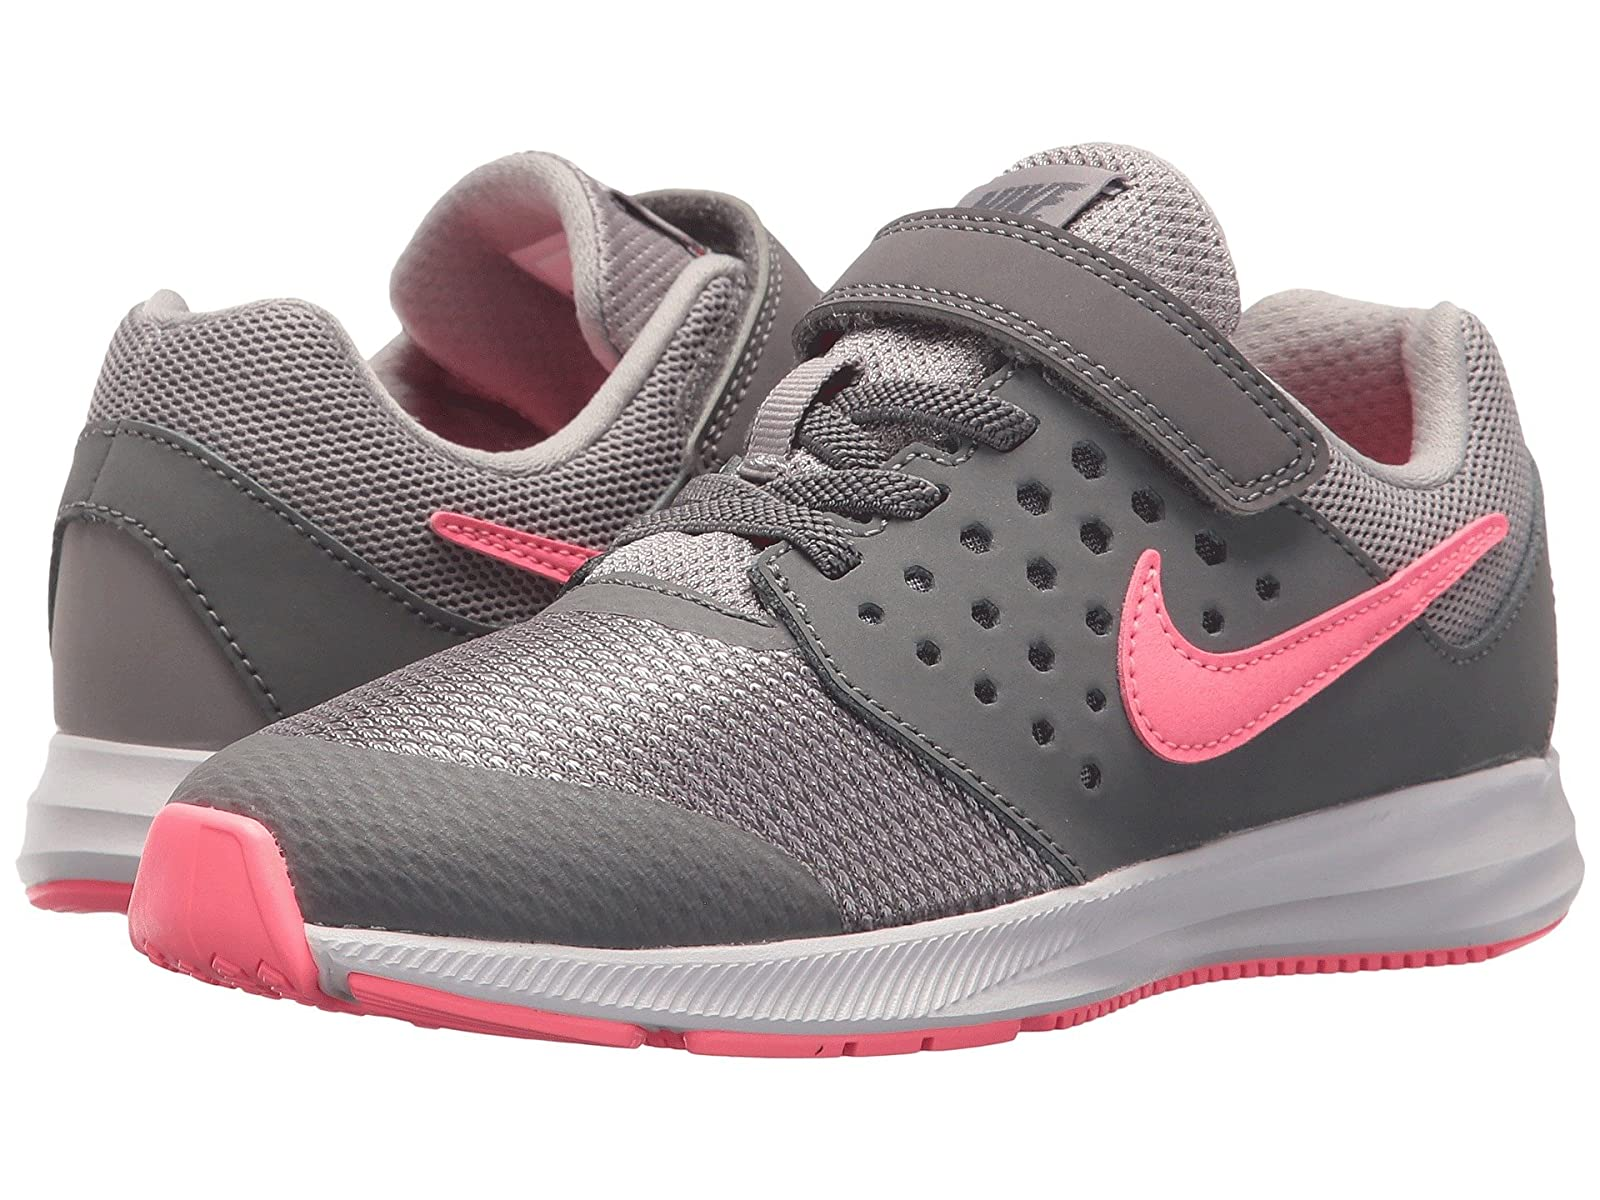 Nike Kids Downshifter 7 PSV (Little Kid)Cheap and distinctive eye-catching shoes